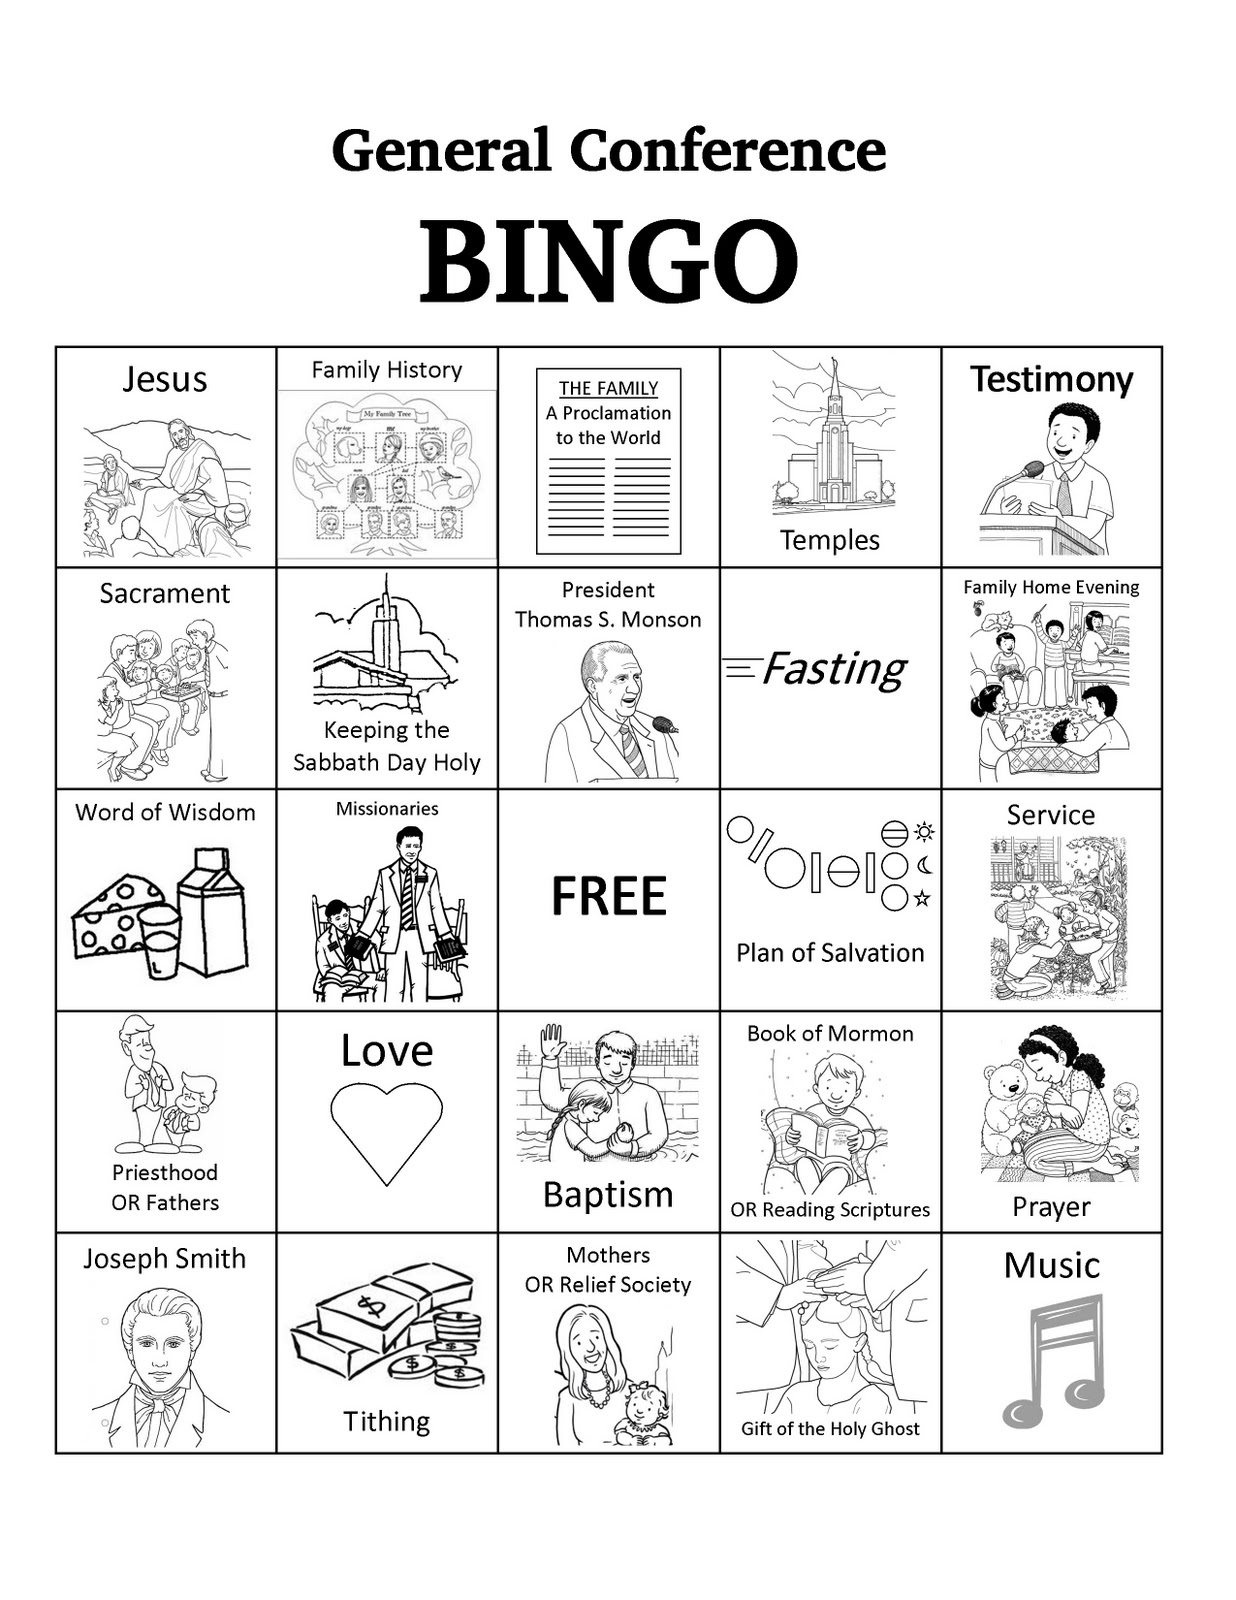 Free Download General Conference Bingo